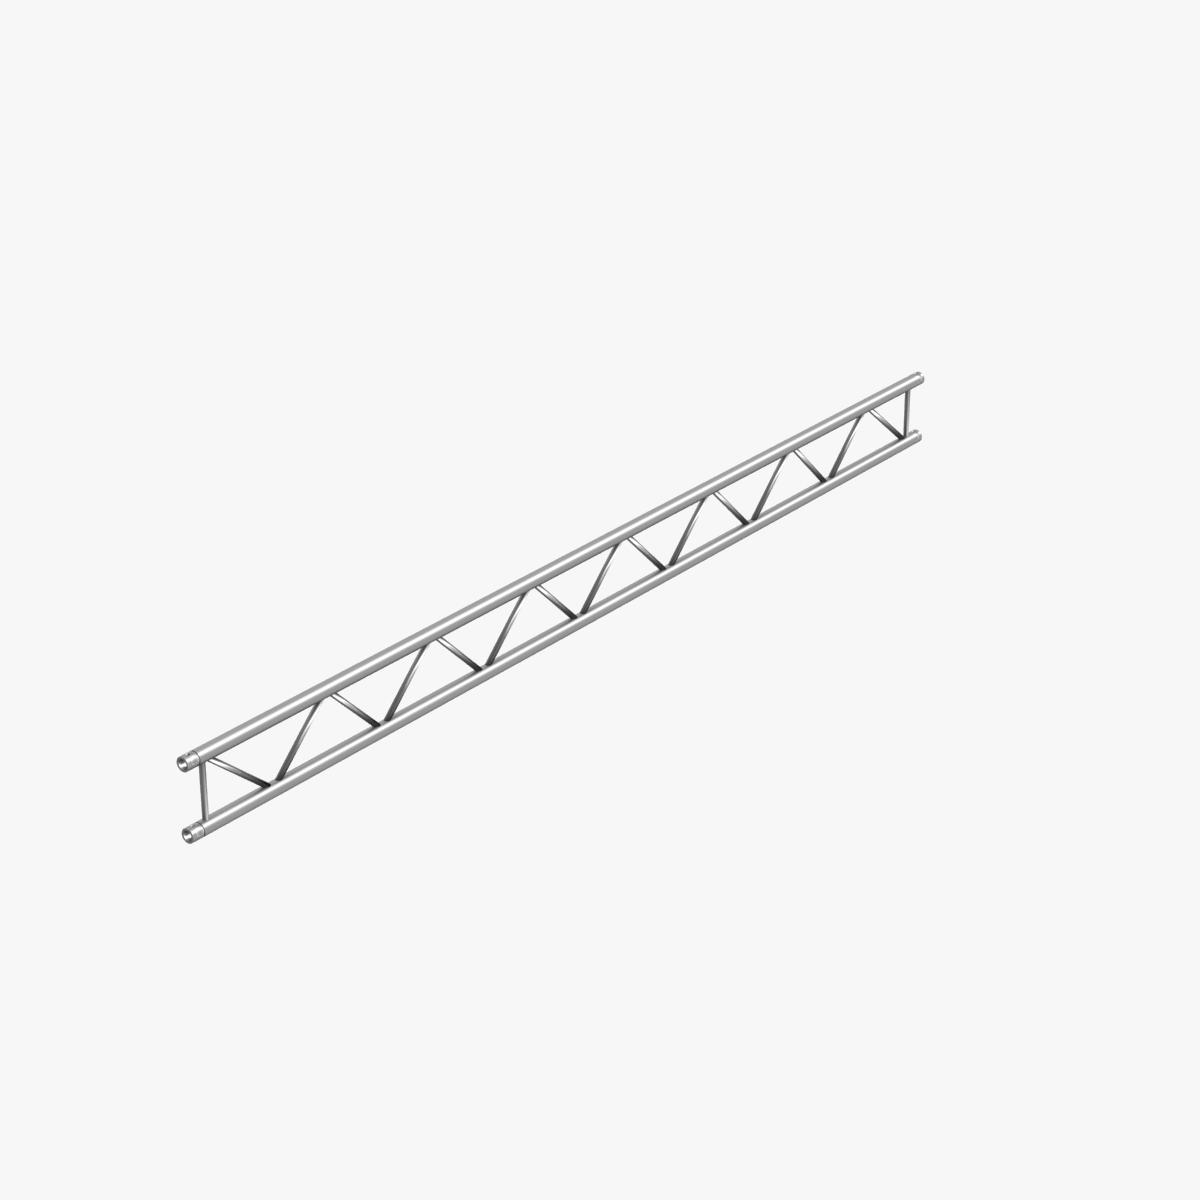 beam trusses (collection 24 modular pieces) 3d model 3ds max dxf fbx bmp blend c4d dae other obj 268733